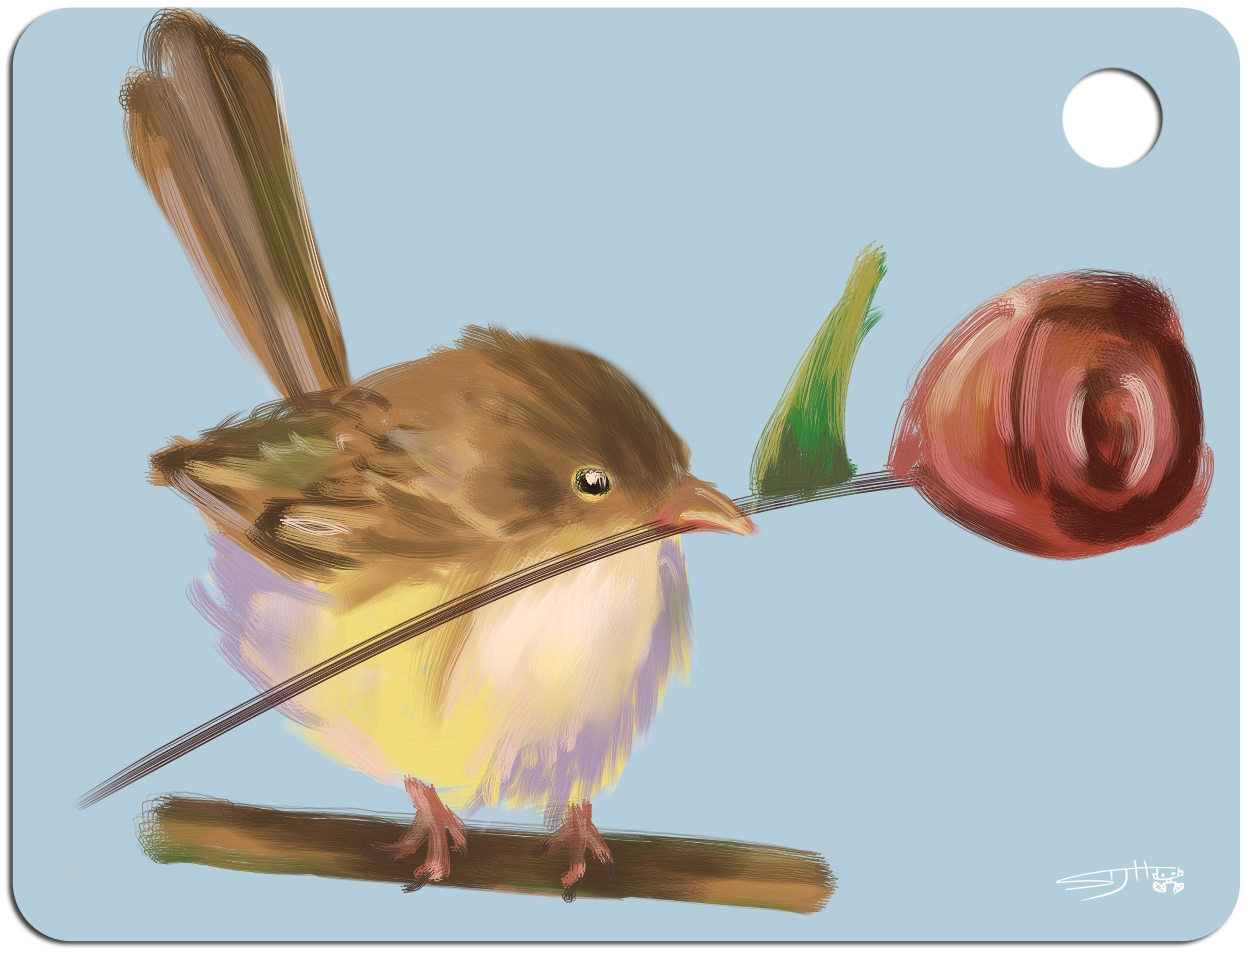 i drew many many birds today. final year 3d animation project concept. (: